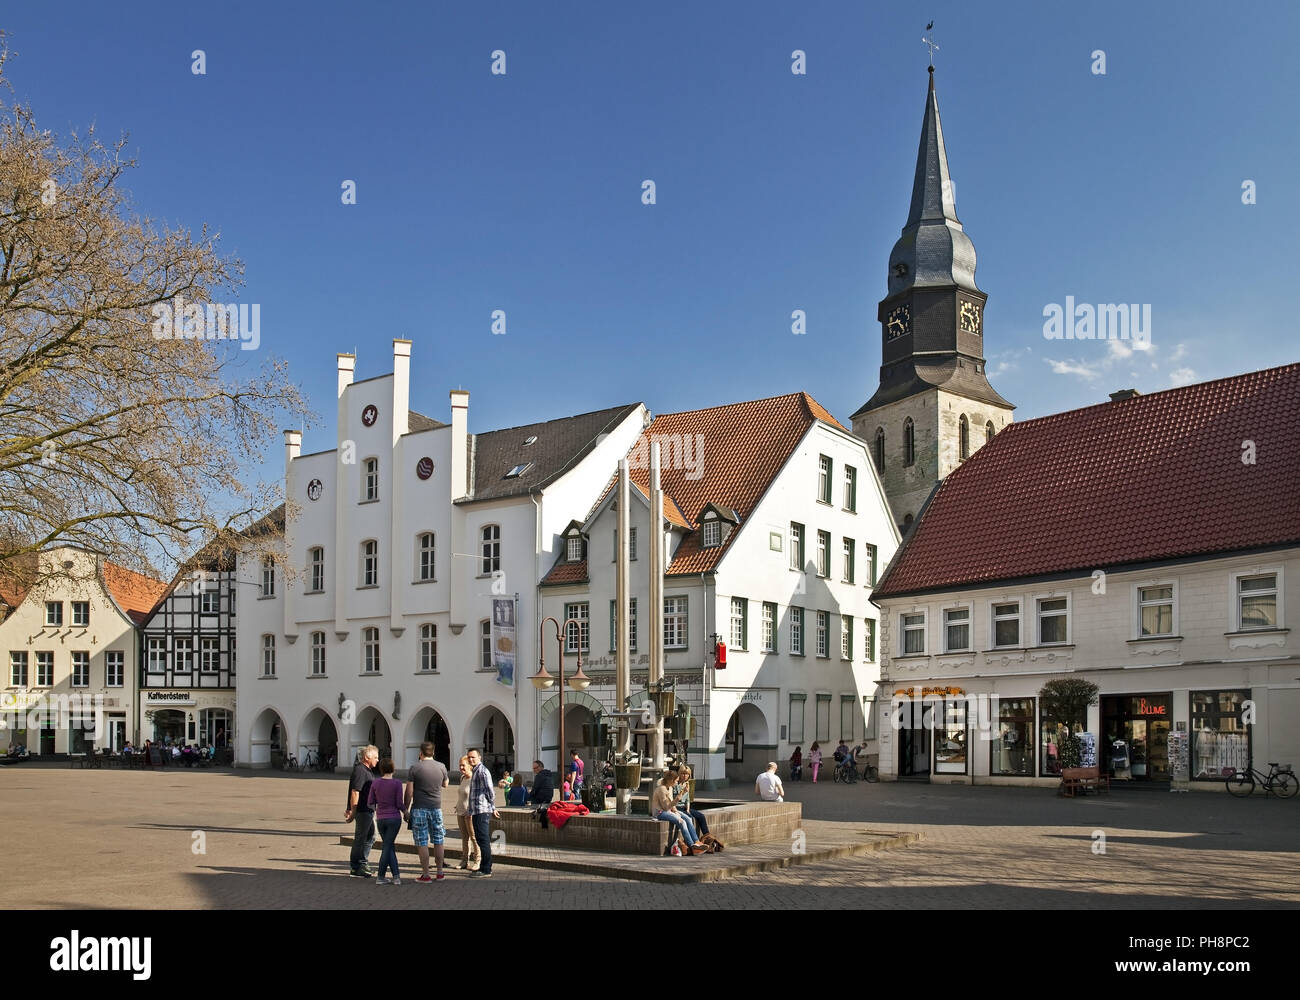 marketplace, town museum and church, Beckum - Stock Image